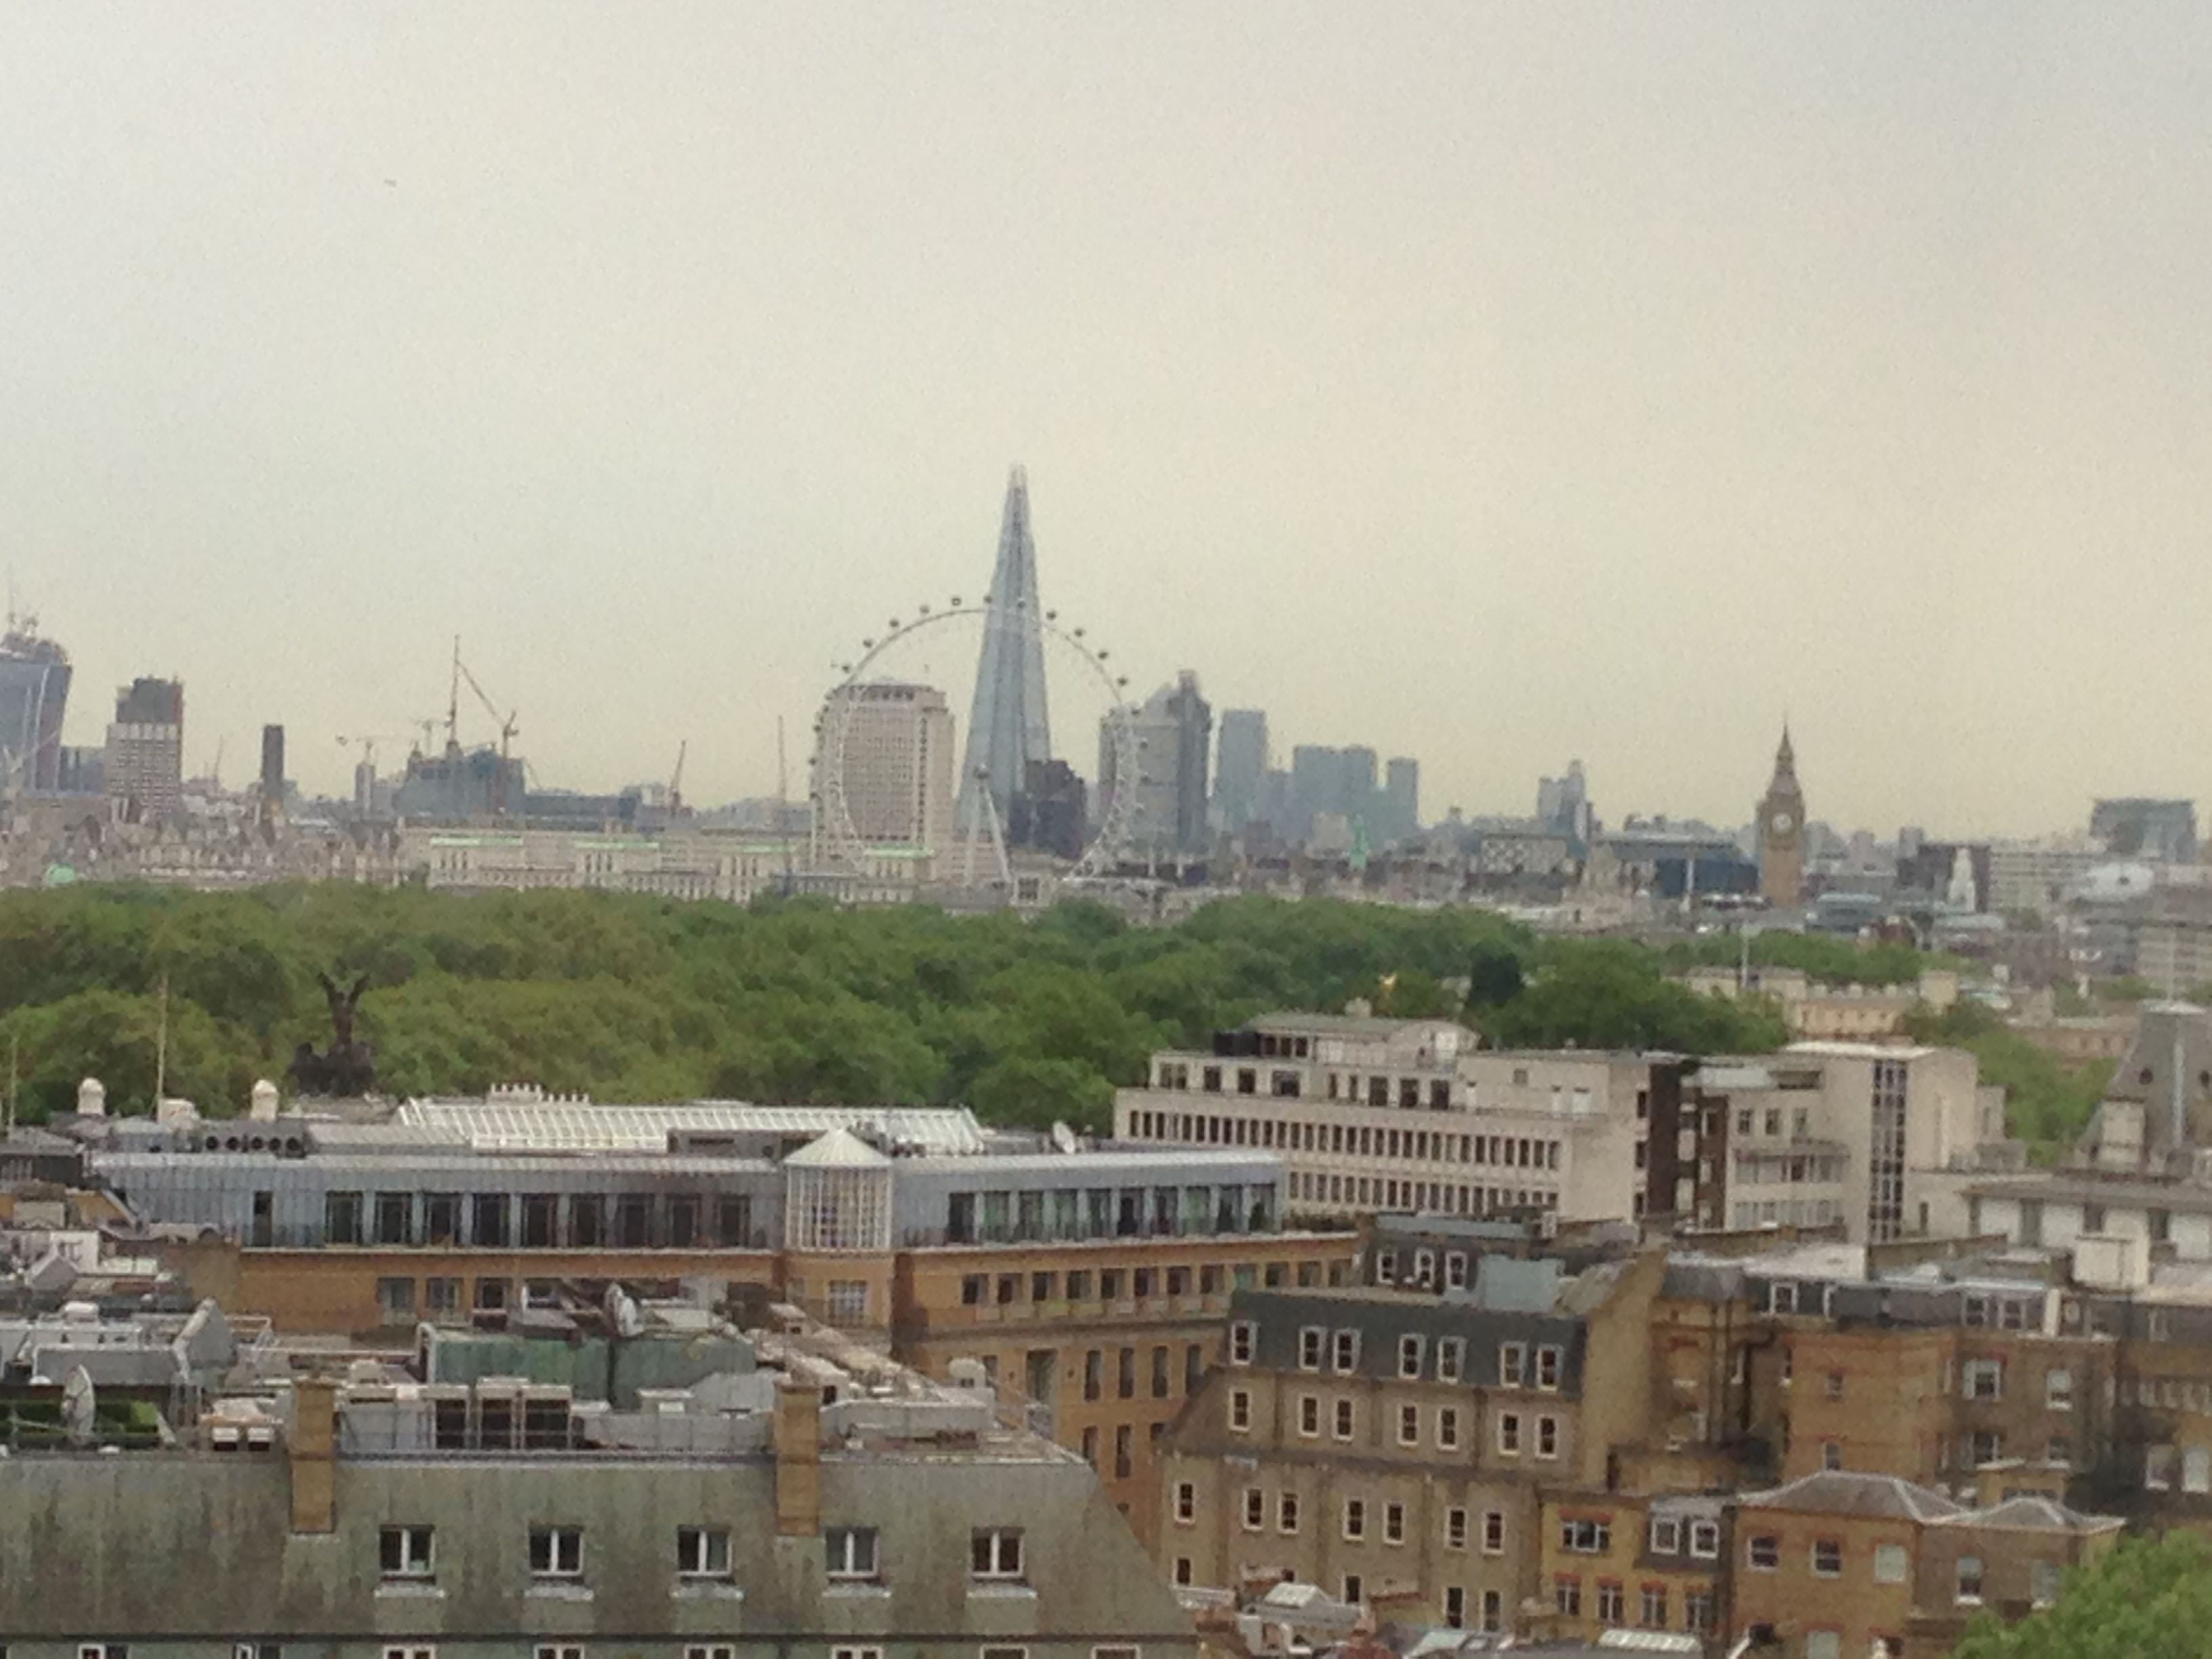 Sky View Of London